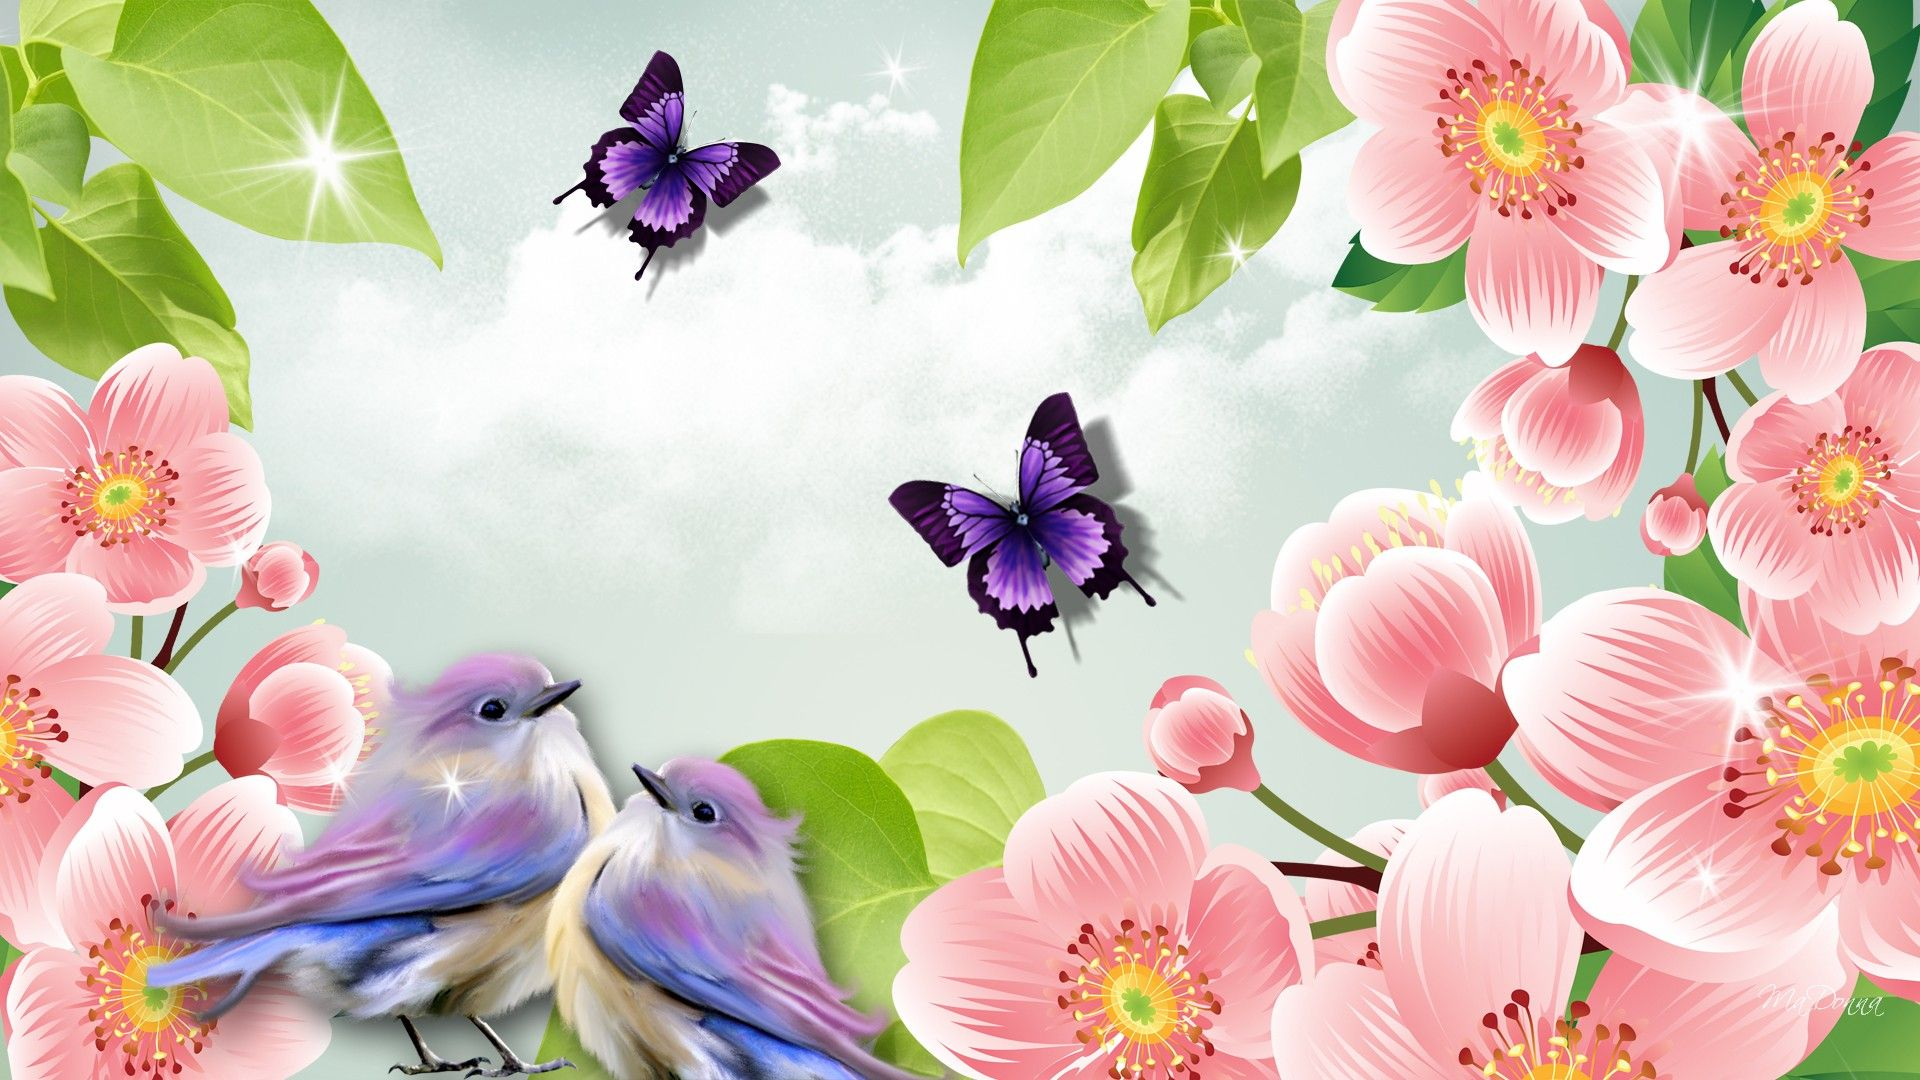 download Images For Cute Spring Desktop Wallpaper The 1920x1080